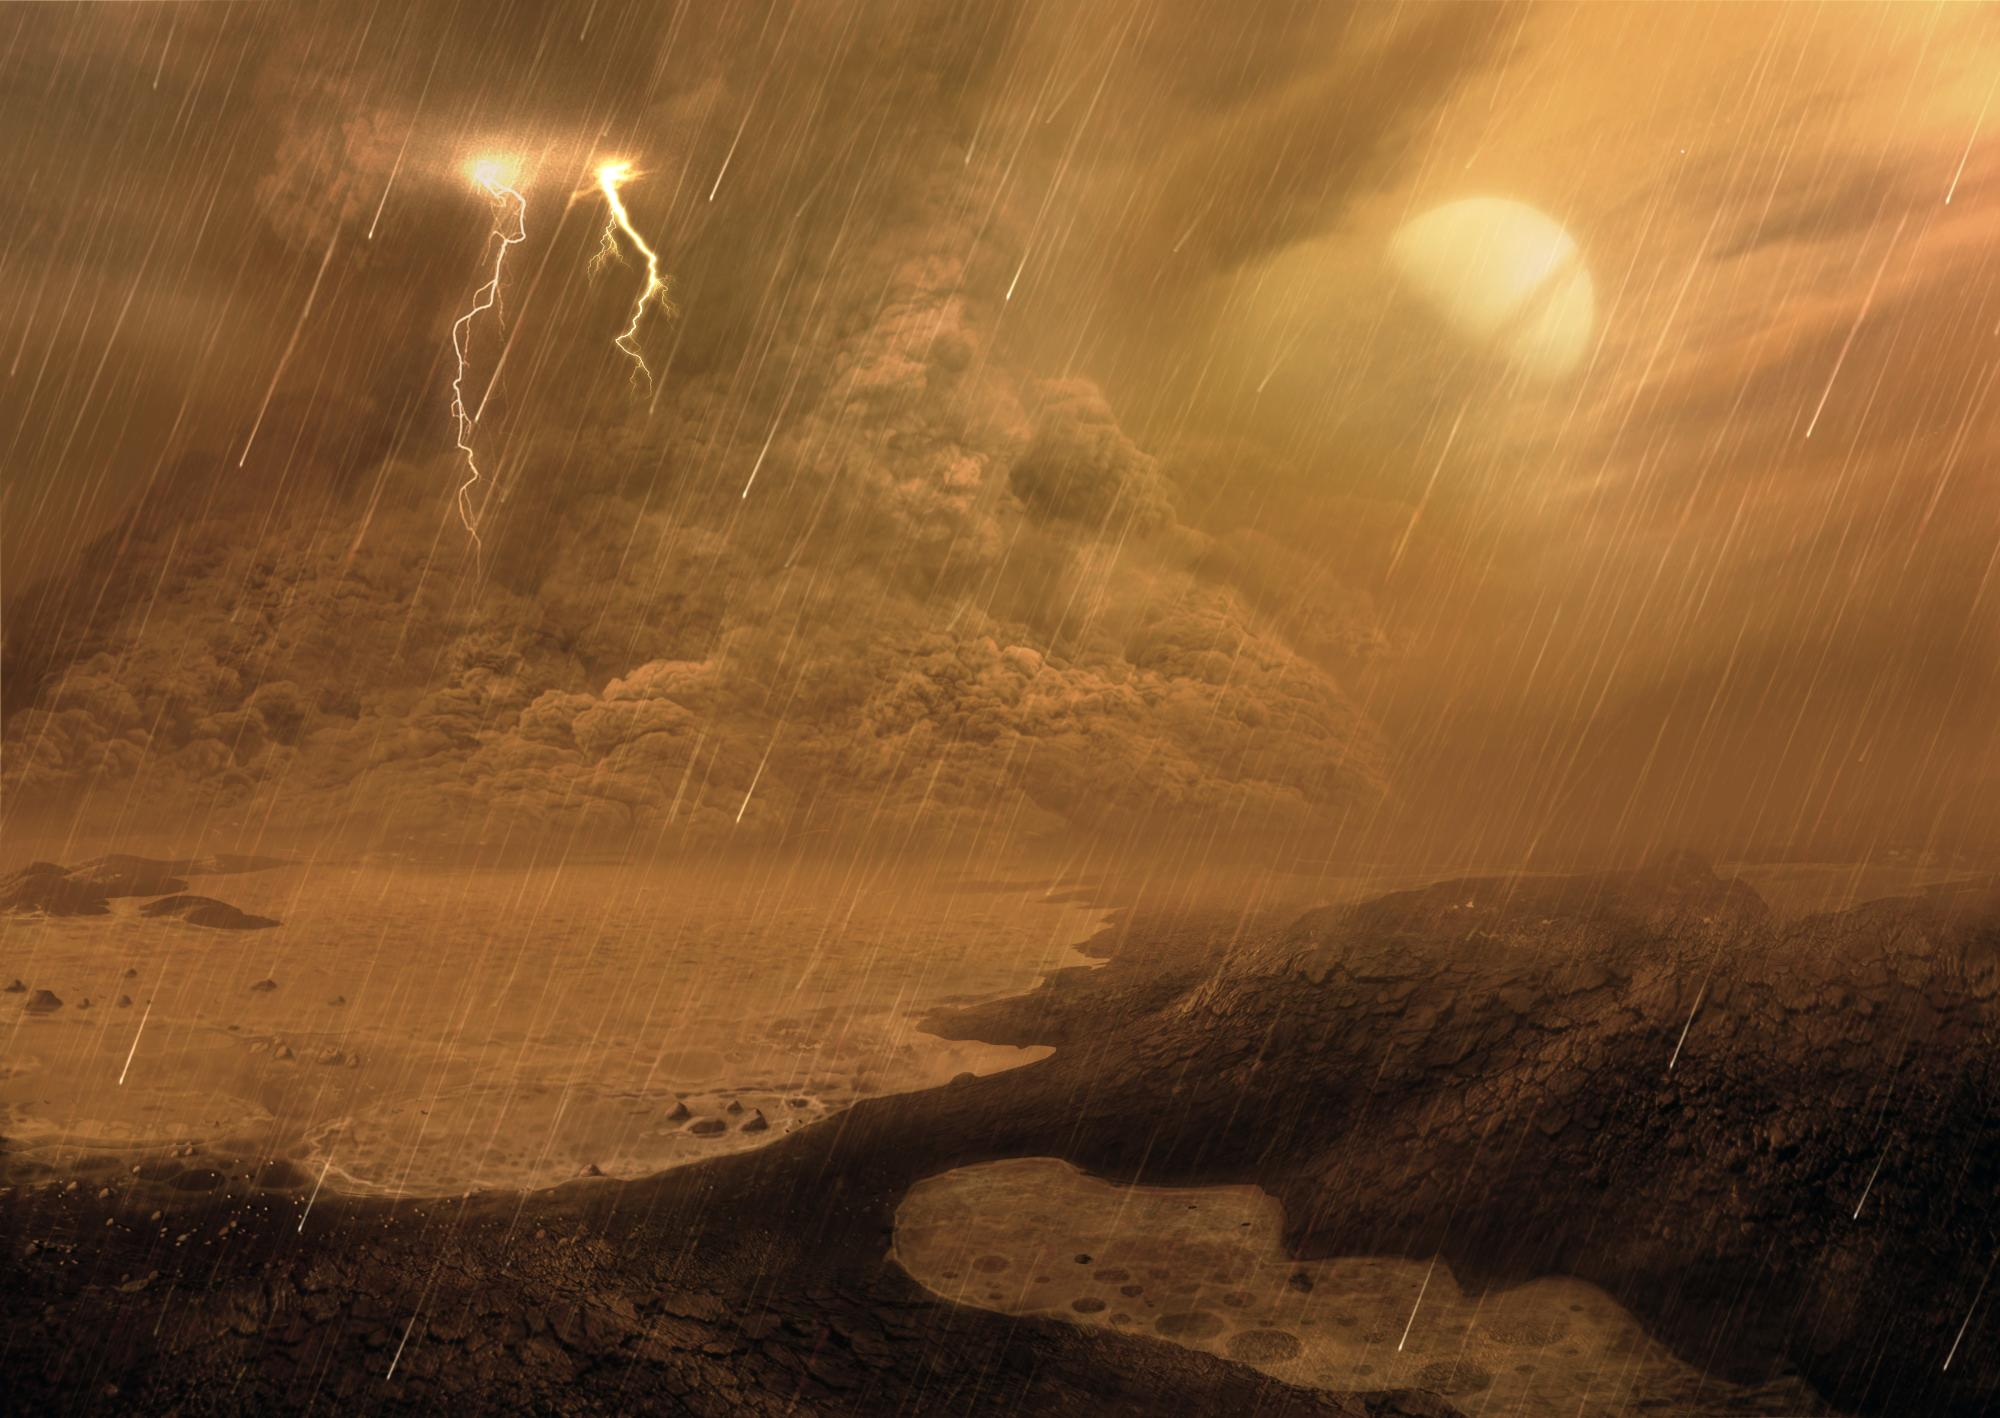 Scientists work out what rain is like on other planets (and it could help us find habitable worlds)